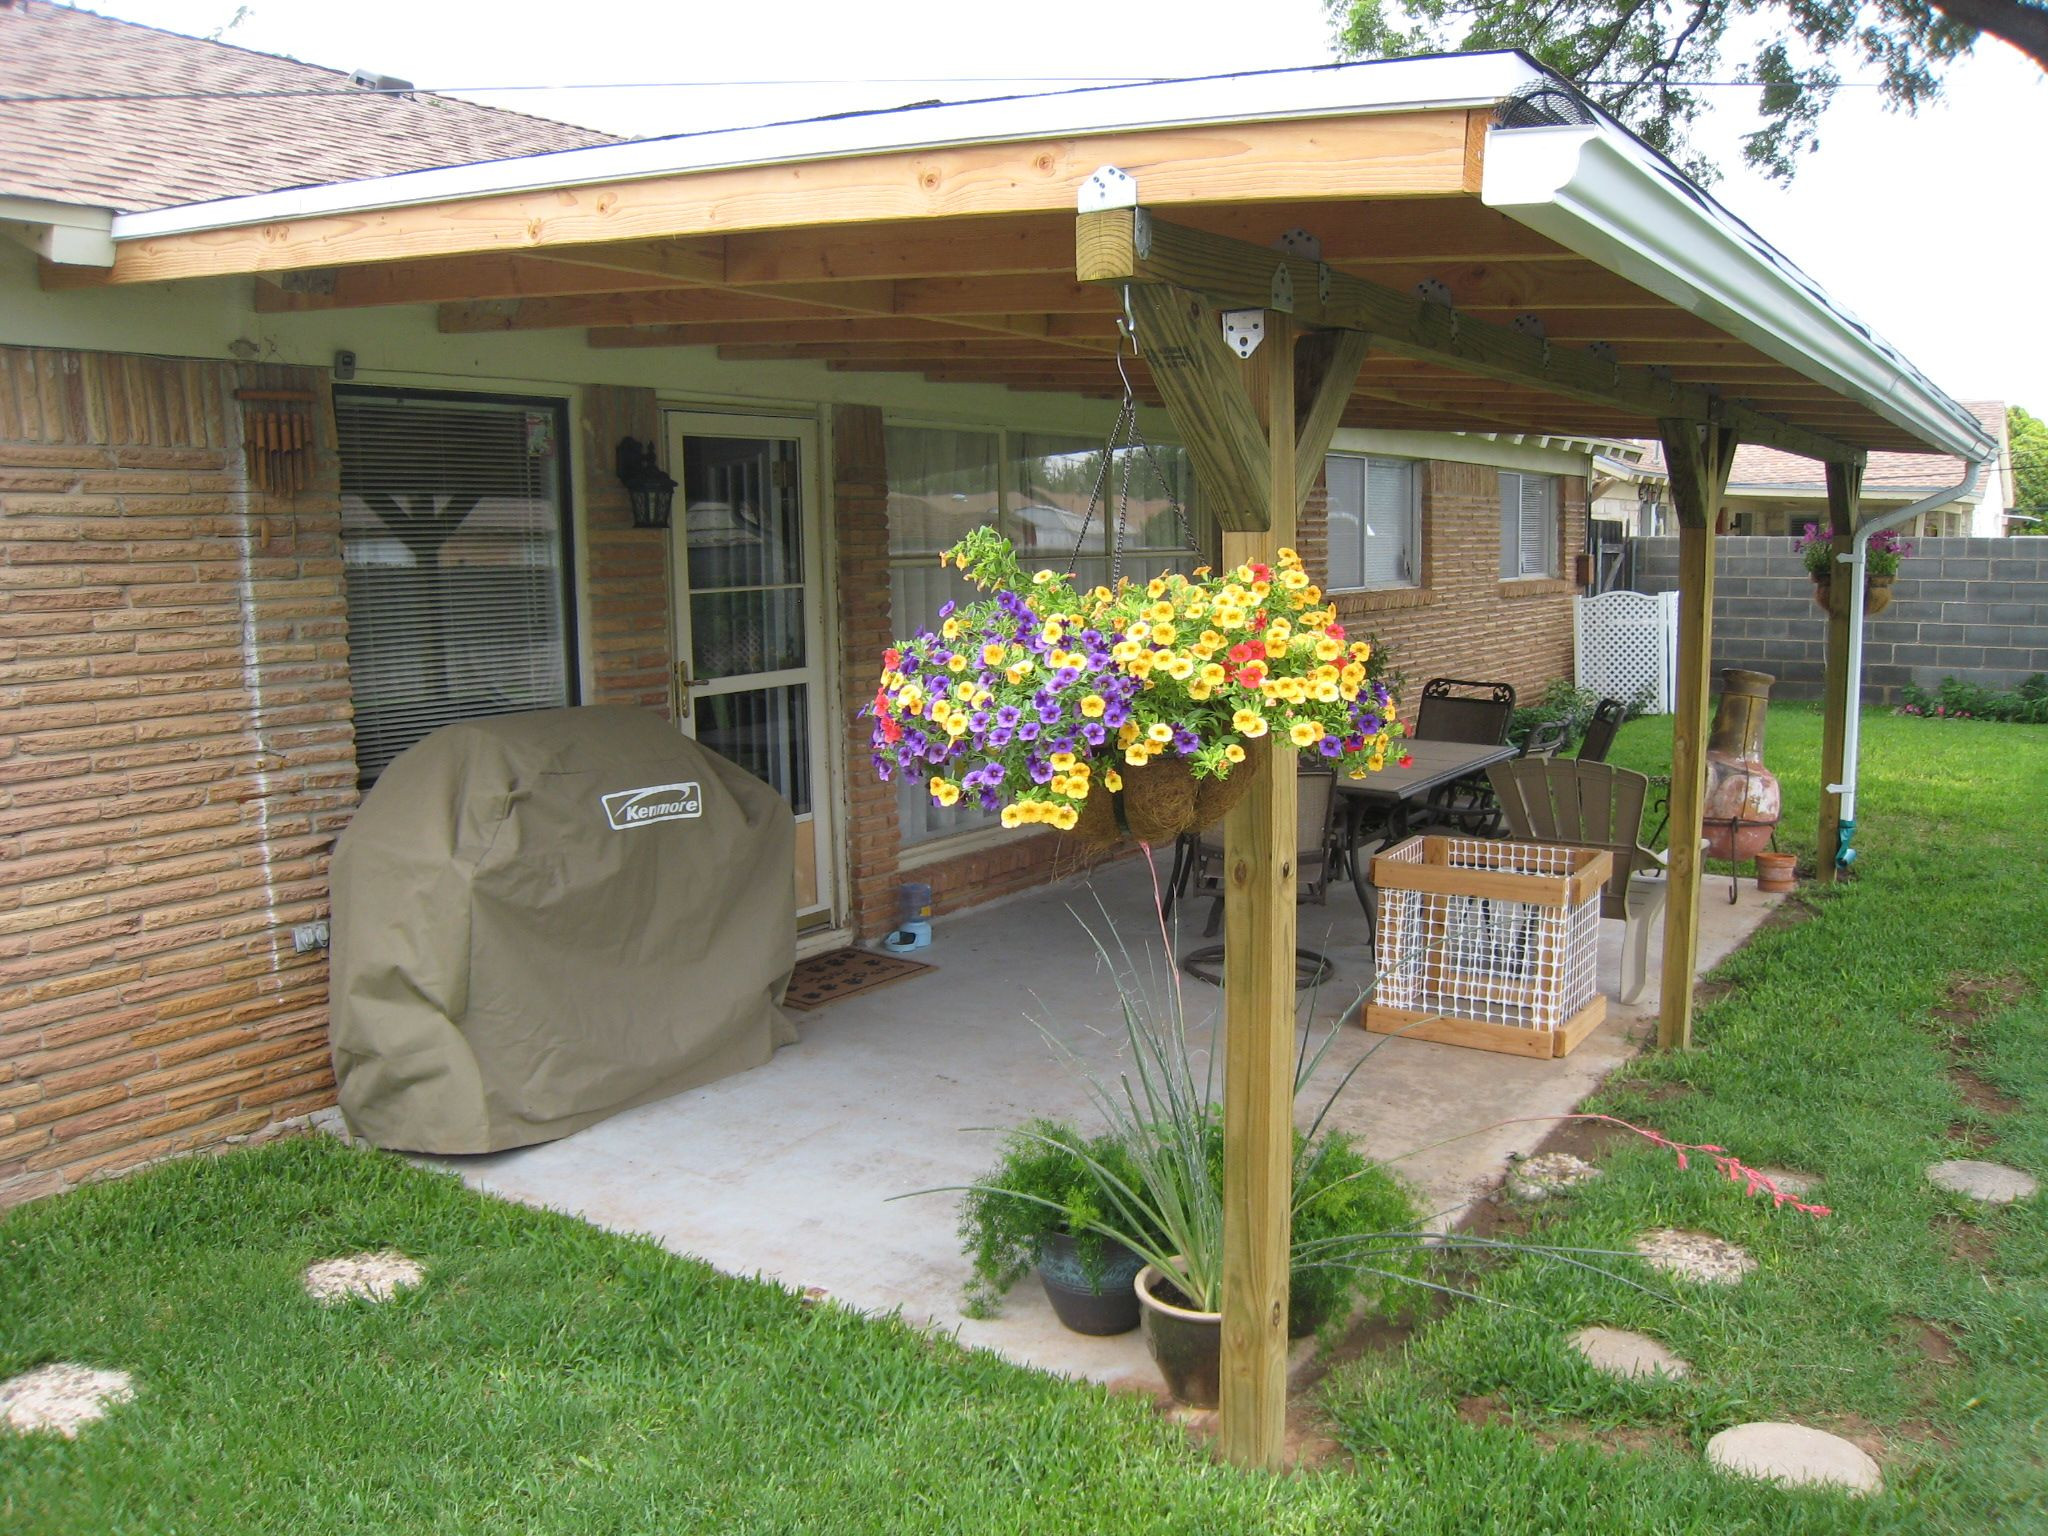 Best ideas about DIY Covered Patio Plans . Save or Pin July 2011 Runner up Winner Patio cover makeover Now.